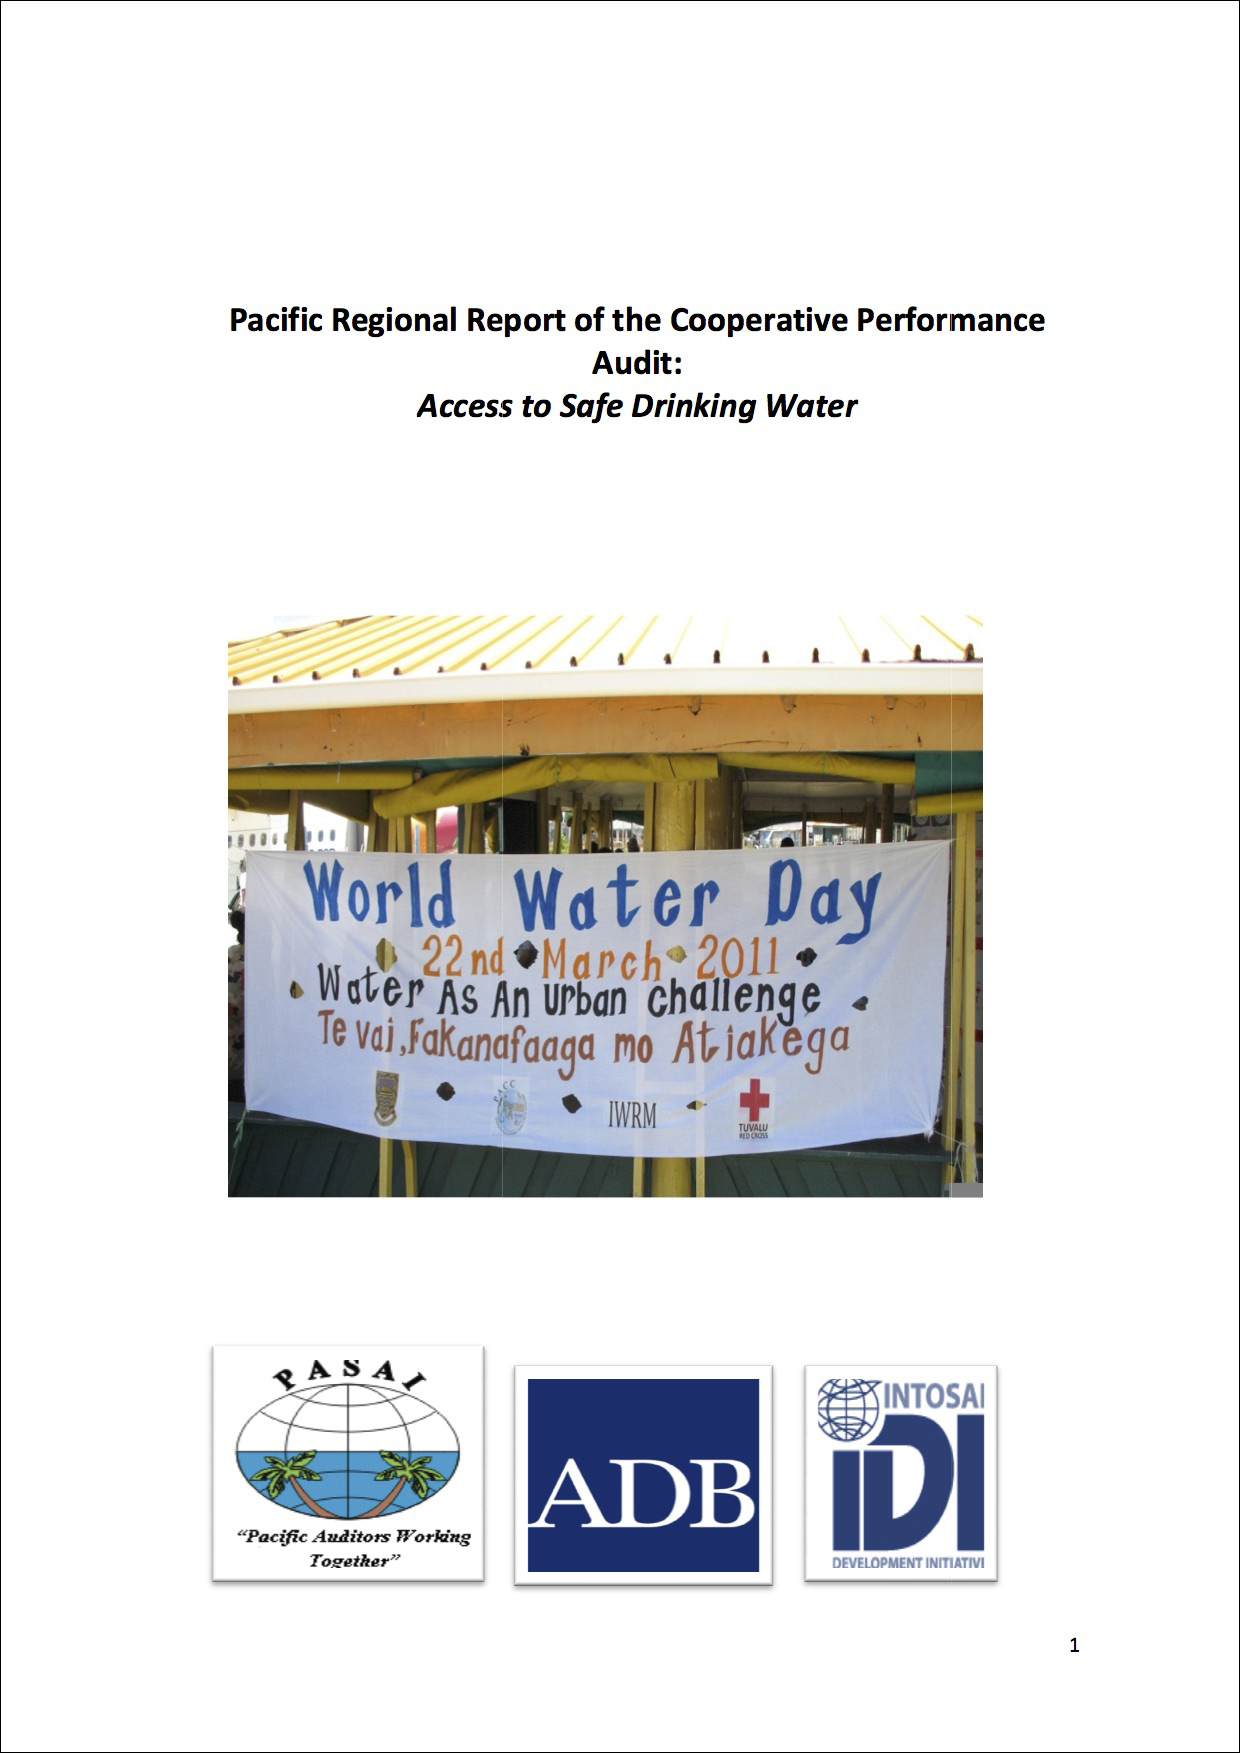 access to safe drinking water-edited version June.jpg